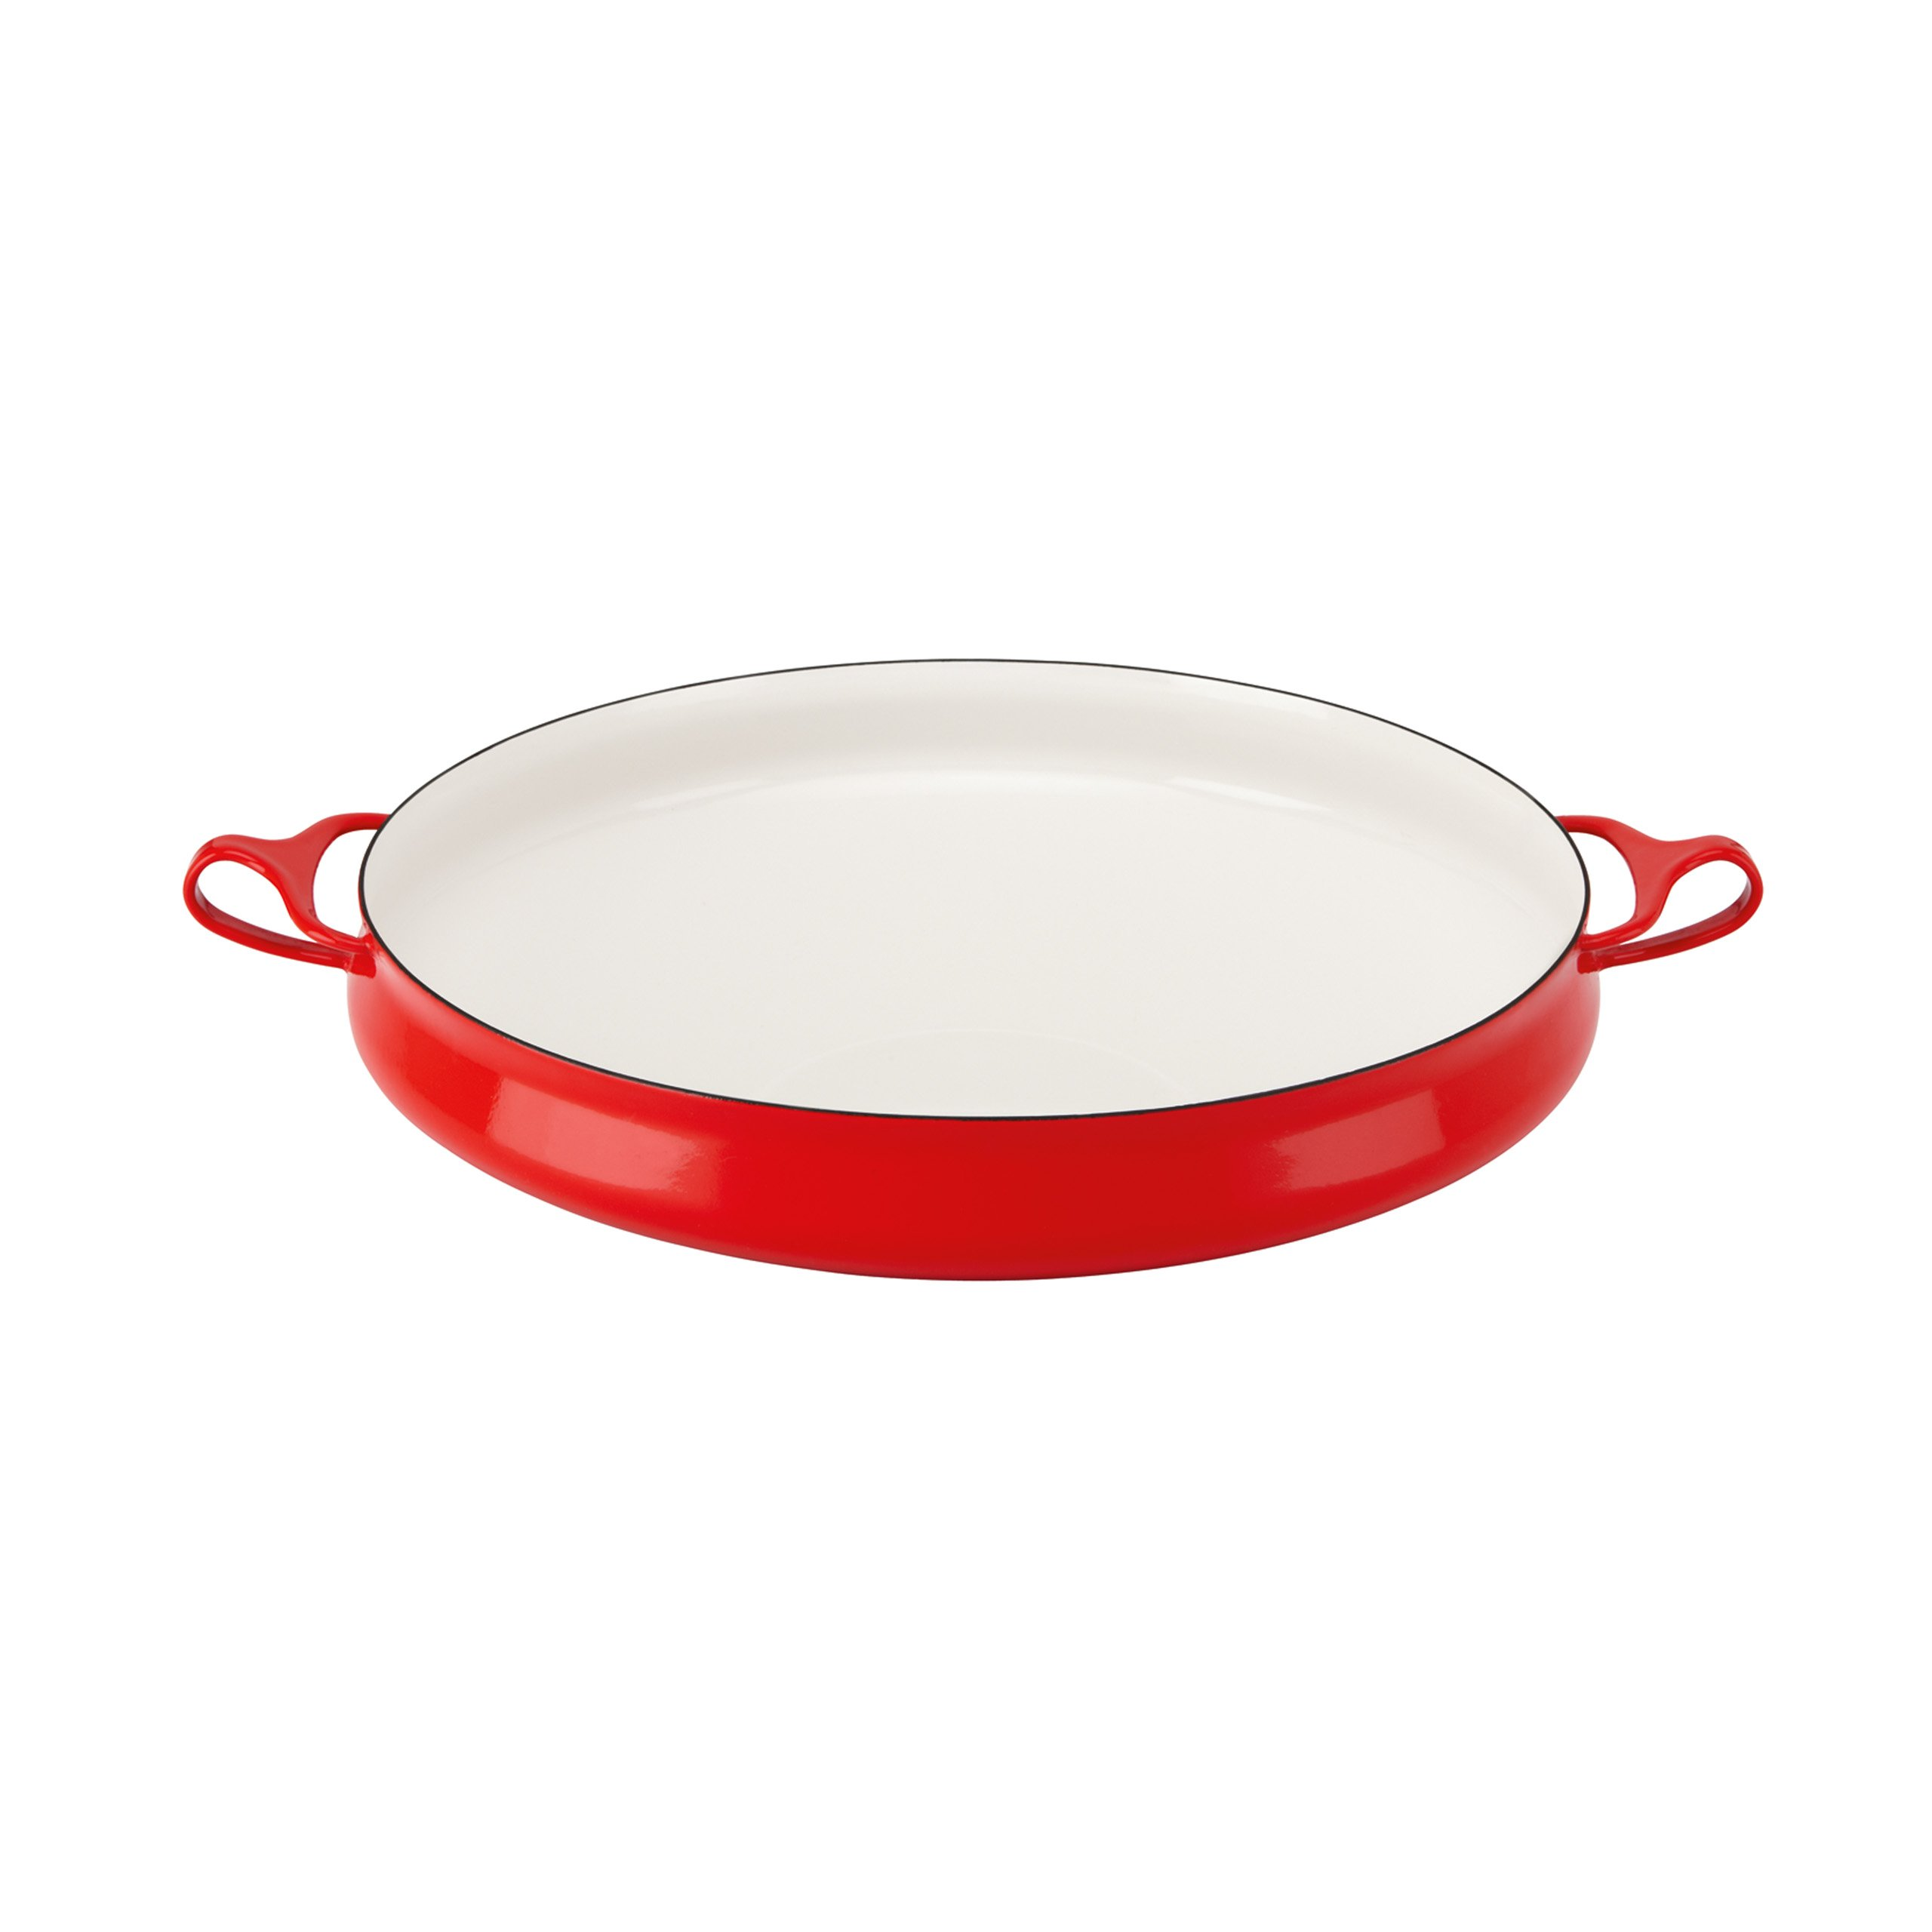 Dansk Kobenstyle Chili Red Buffet Server by Dansk